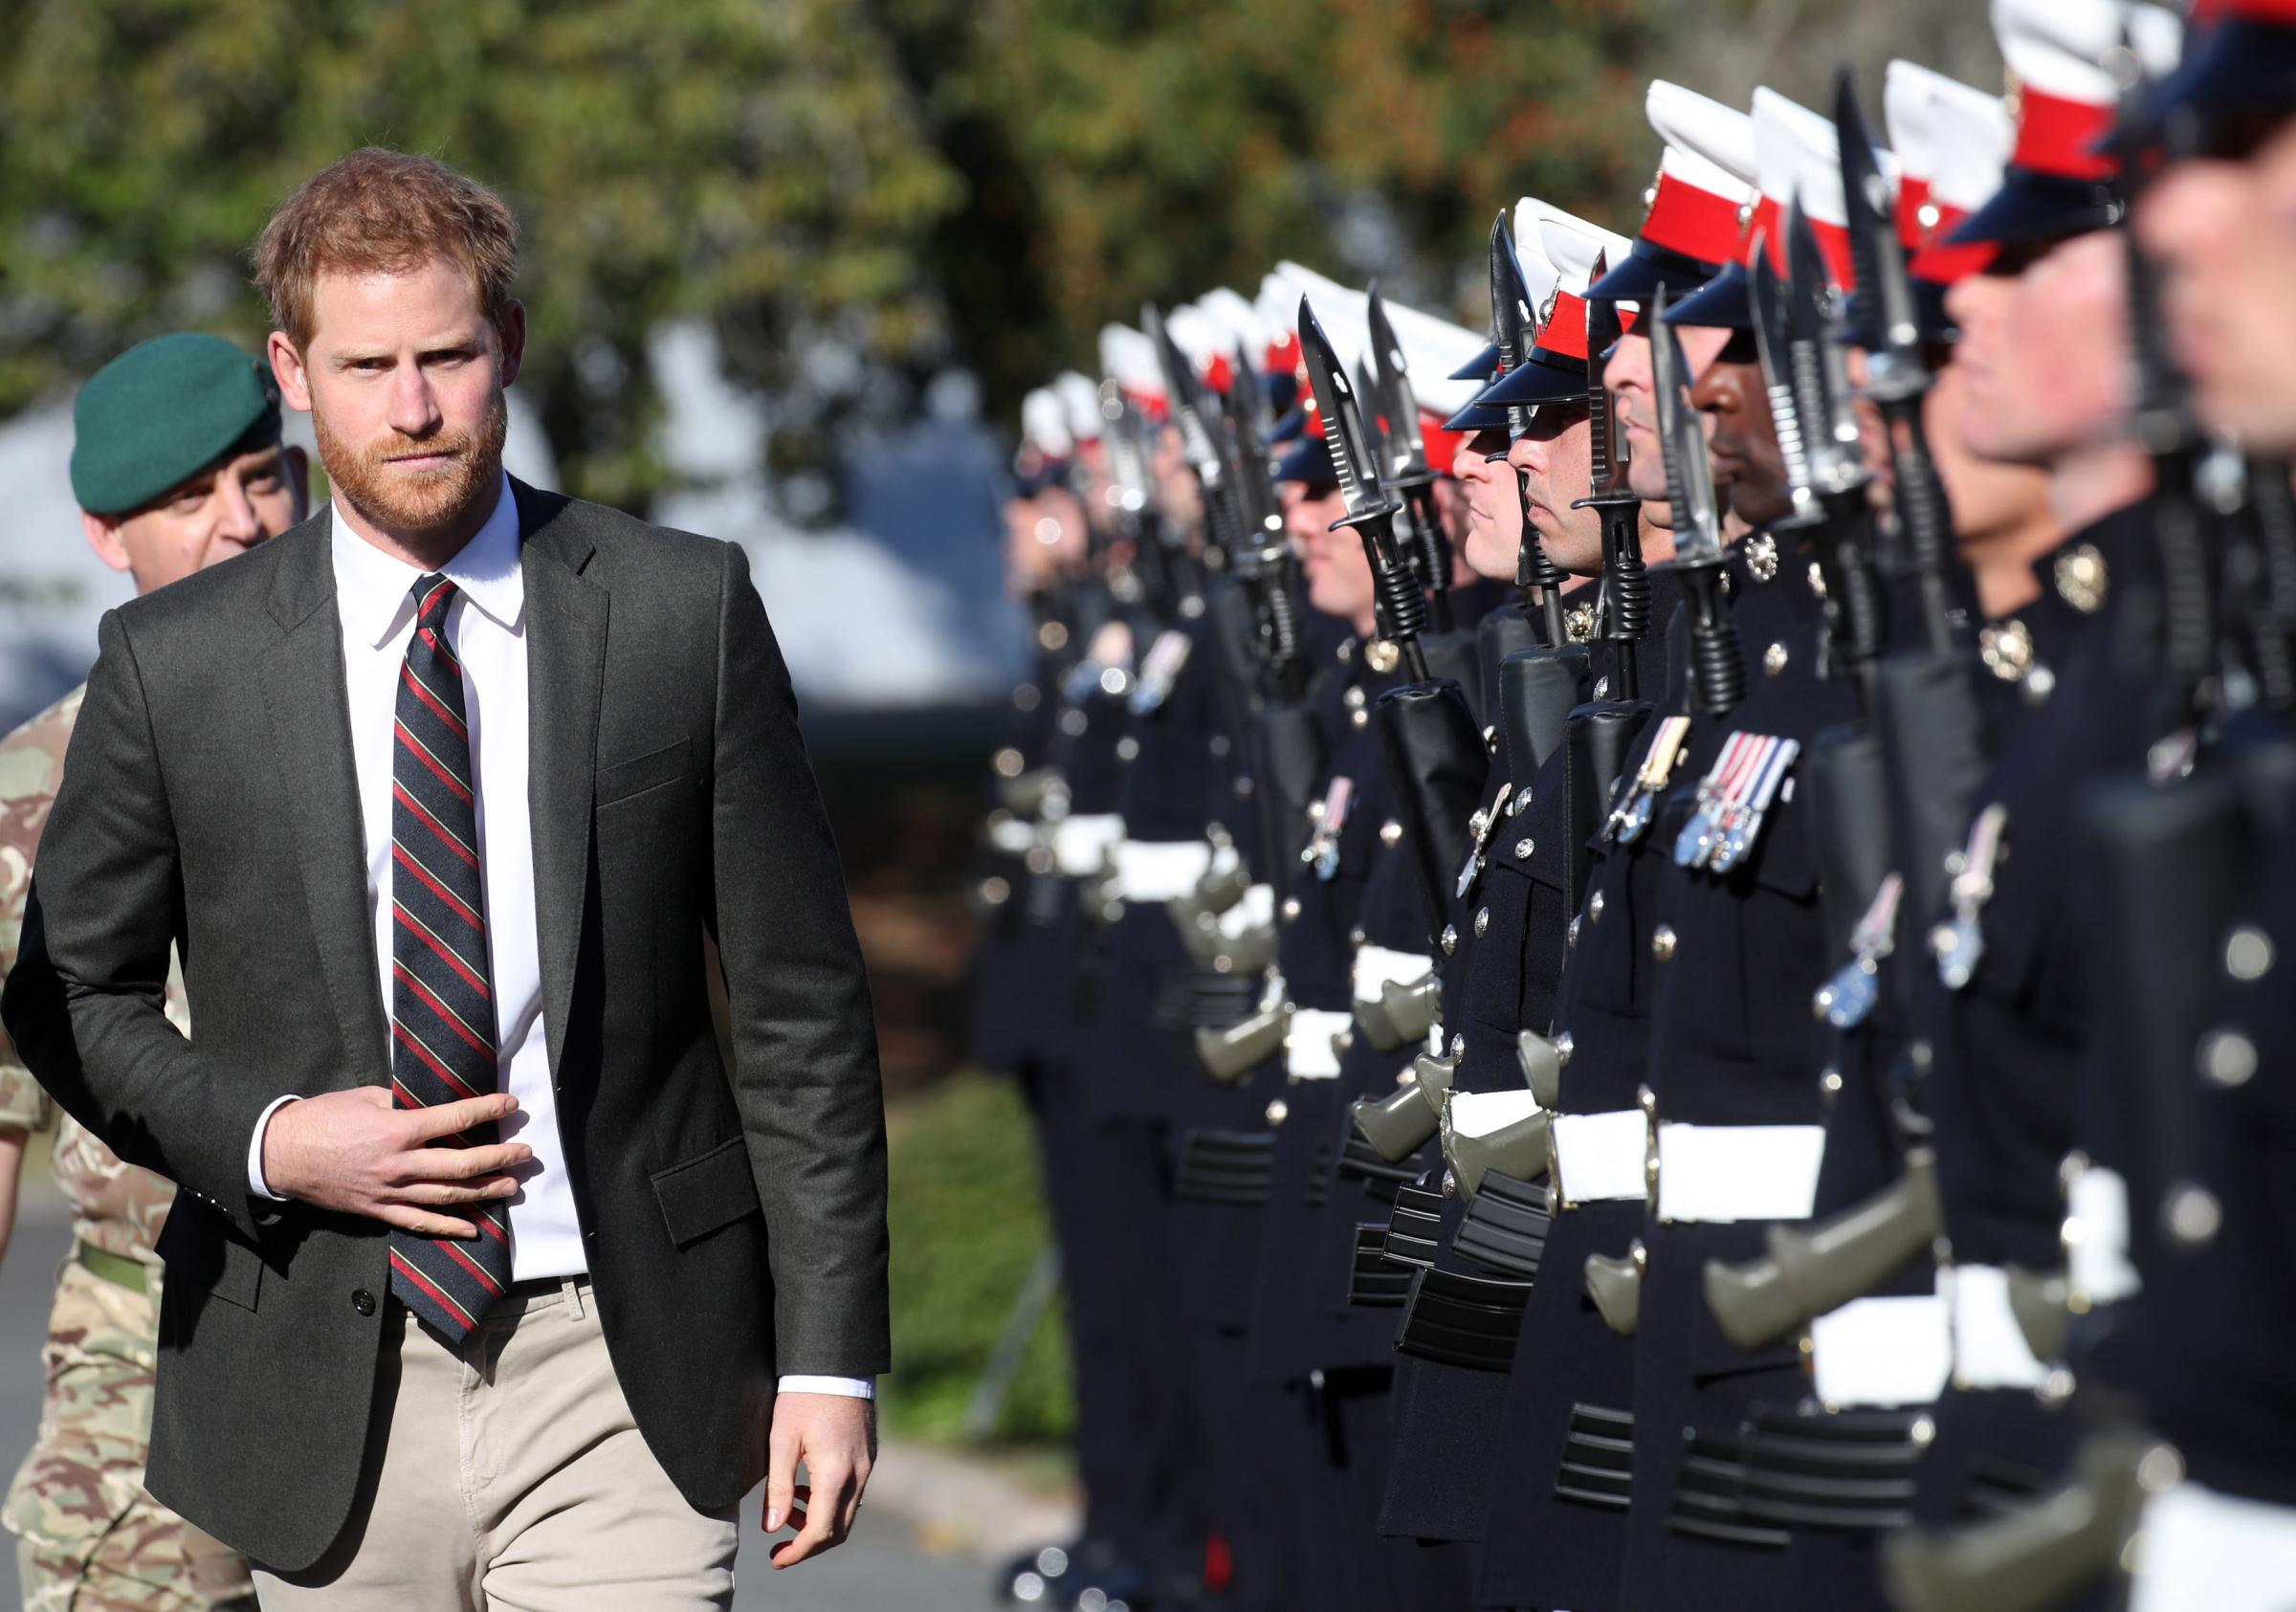 The Duke of Sussex during a visit to the Royal Marines Commando Training Centre in Lympstone, Devon. PRESS ASSOCIATION Photo. Picture date: Thursday September 13, 2018. The Duke met with new recruits undergoing training as well as the Invi